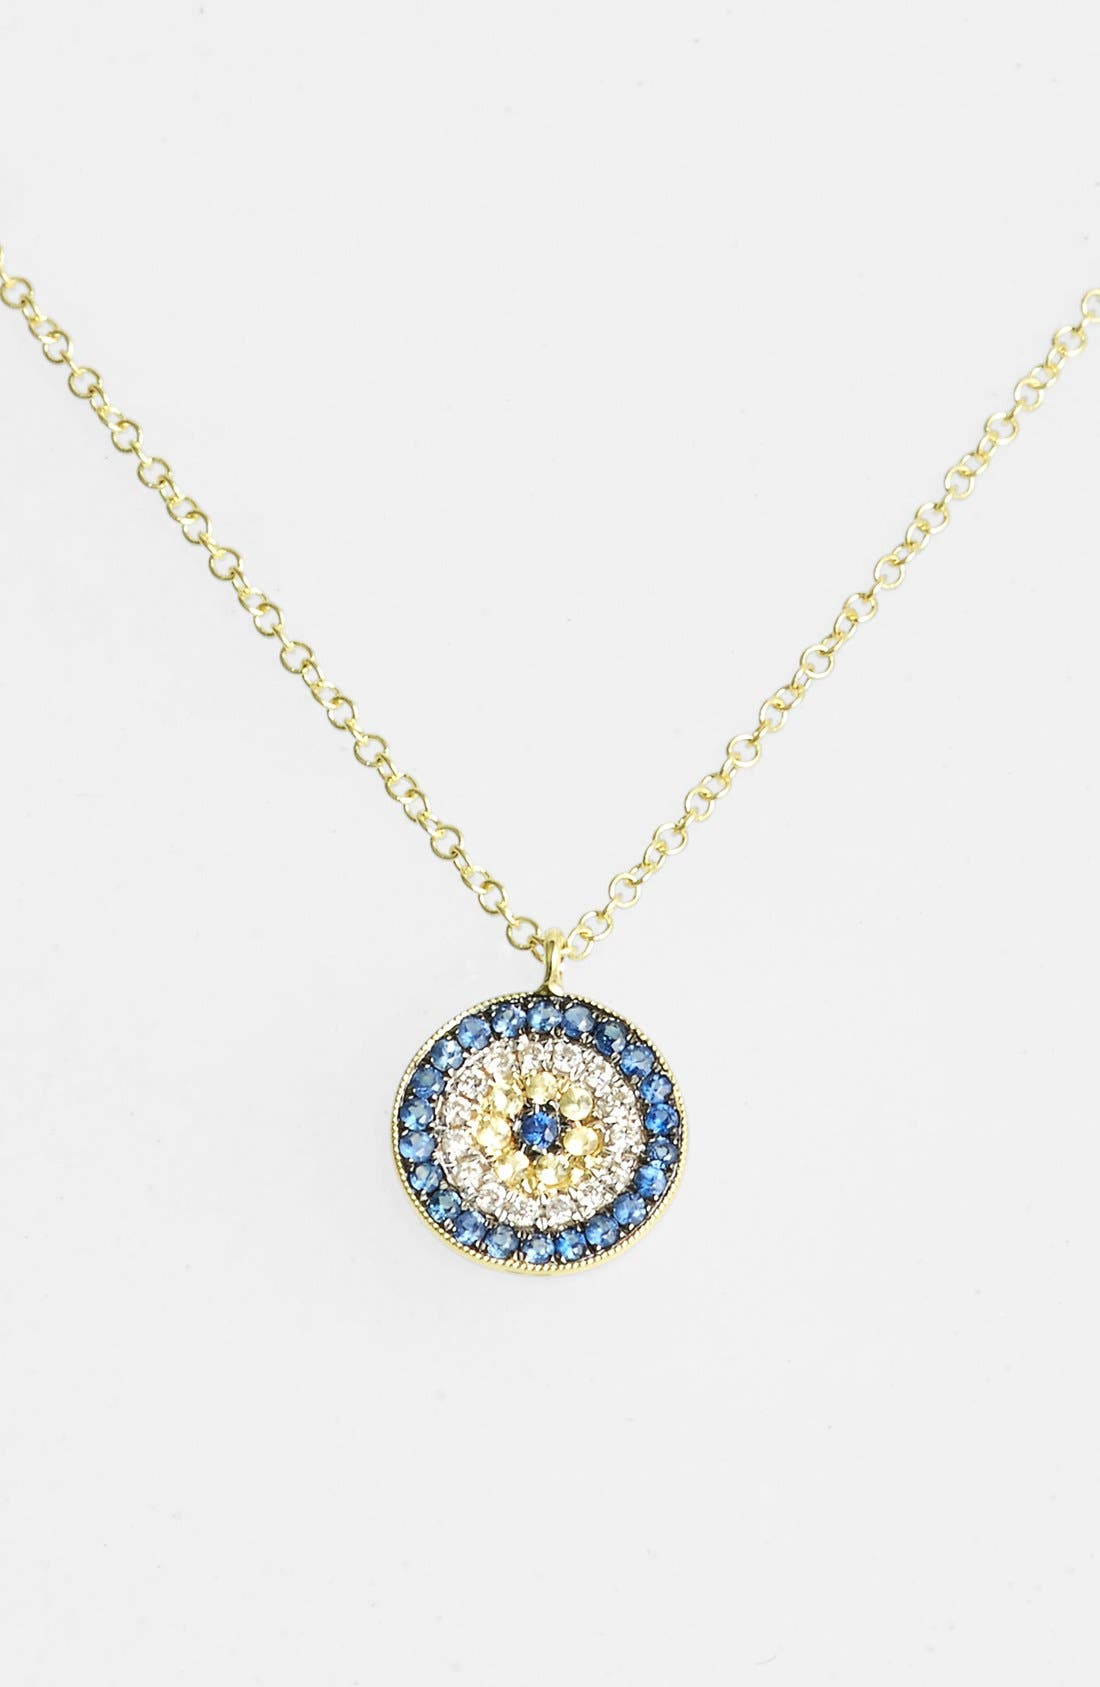 MEIRA T Meirat 'Desert Infusion' Diamond & Sapphire Pendant Necklace in Yellow Gold/ Blue Sapphire